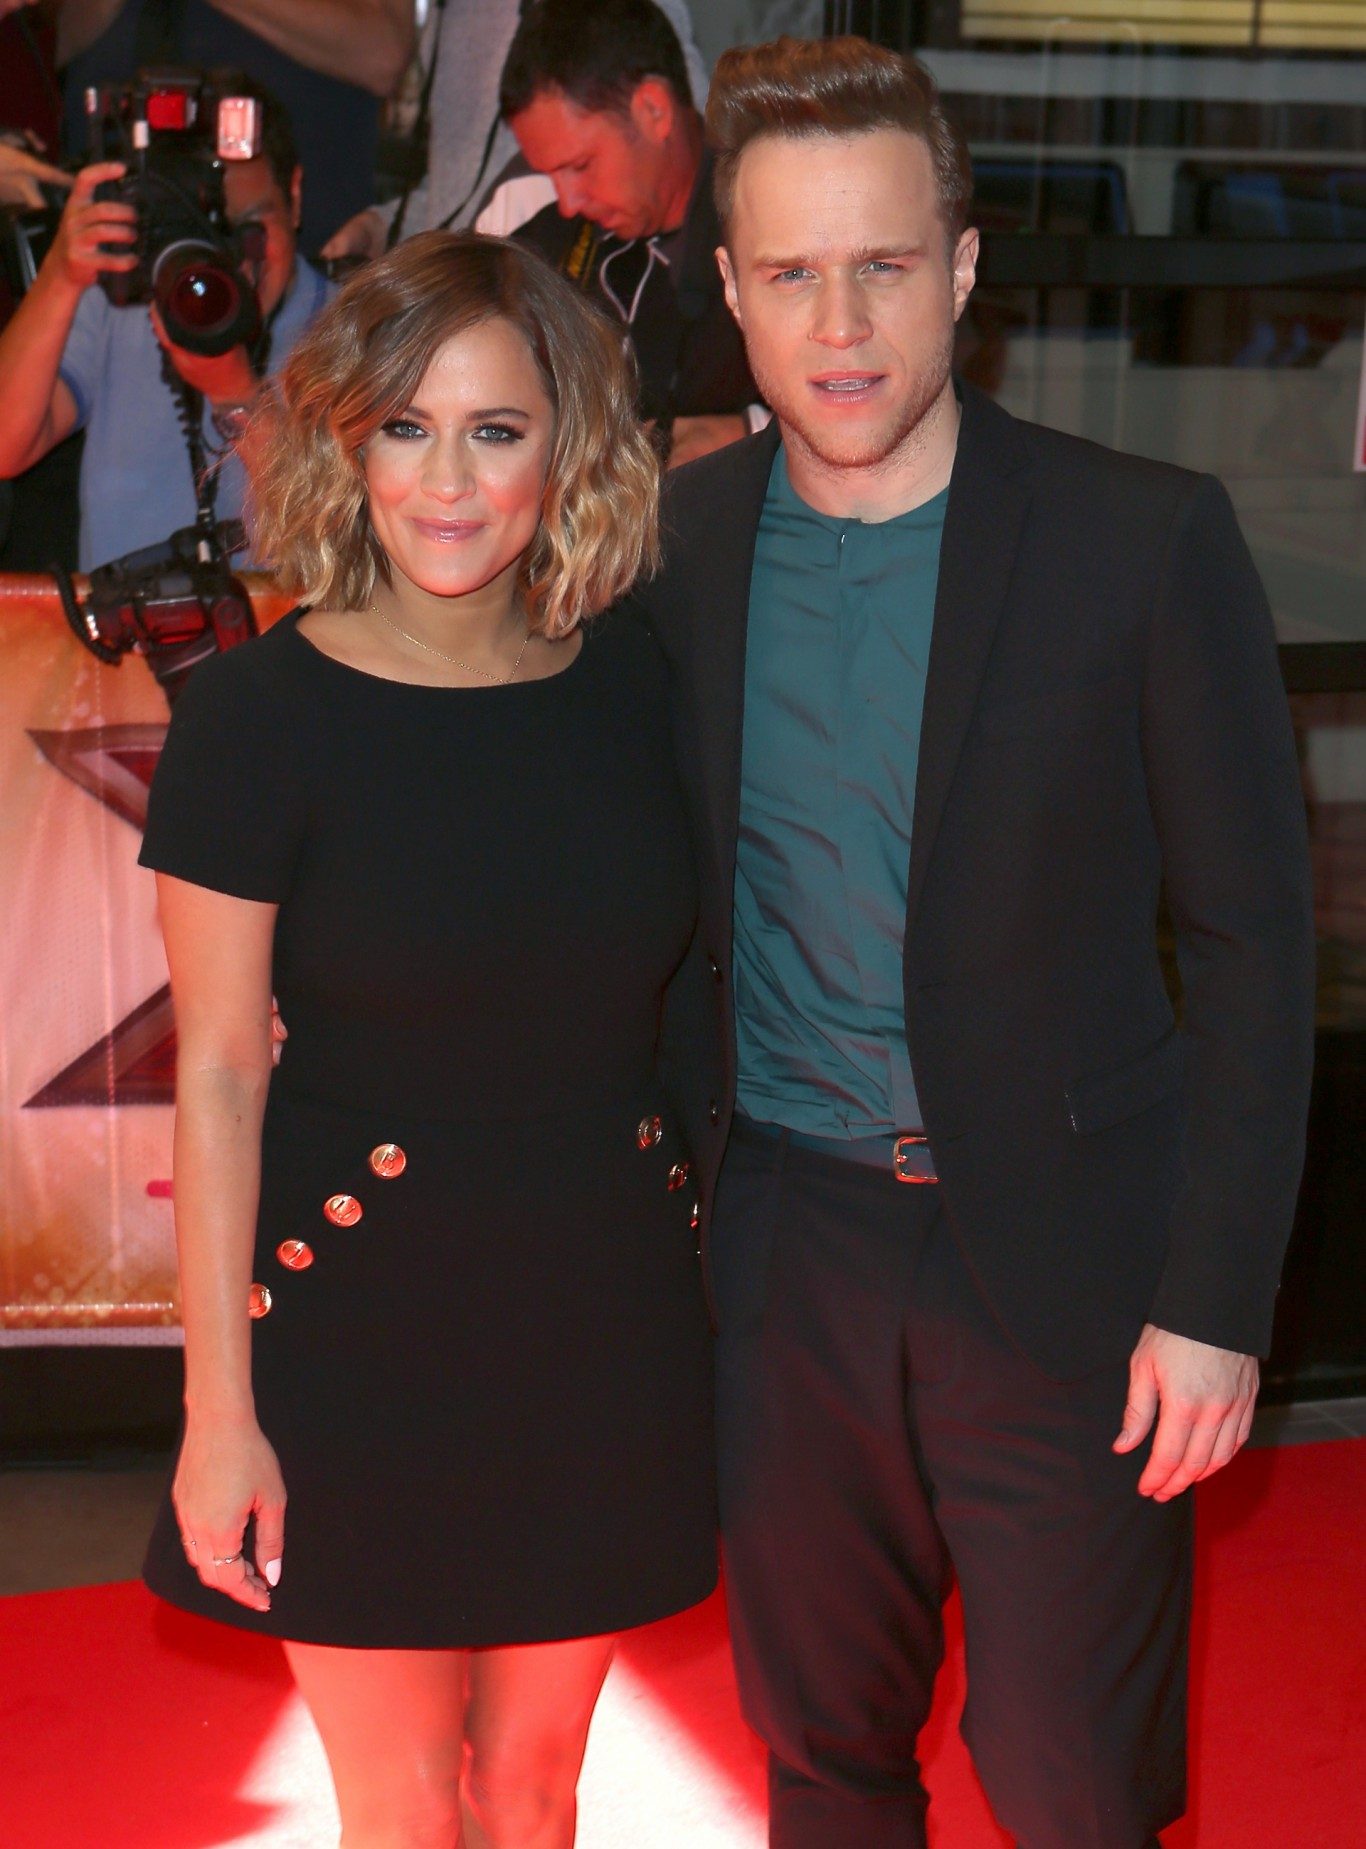 Caroline Flack and Olly Murs on the red carpet at X Factor launch